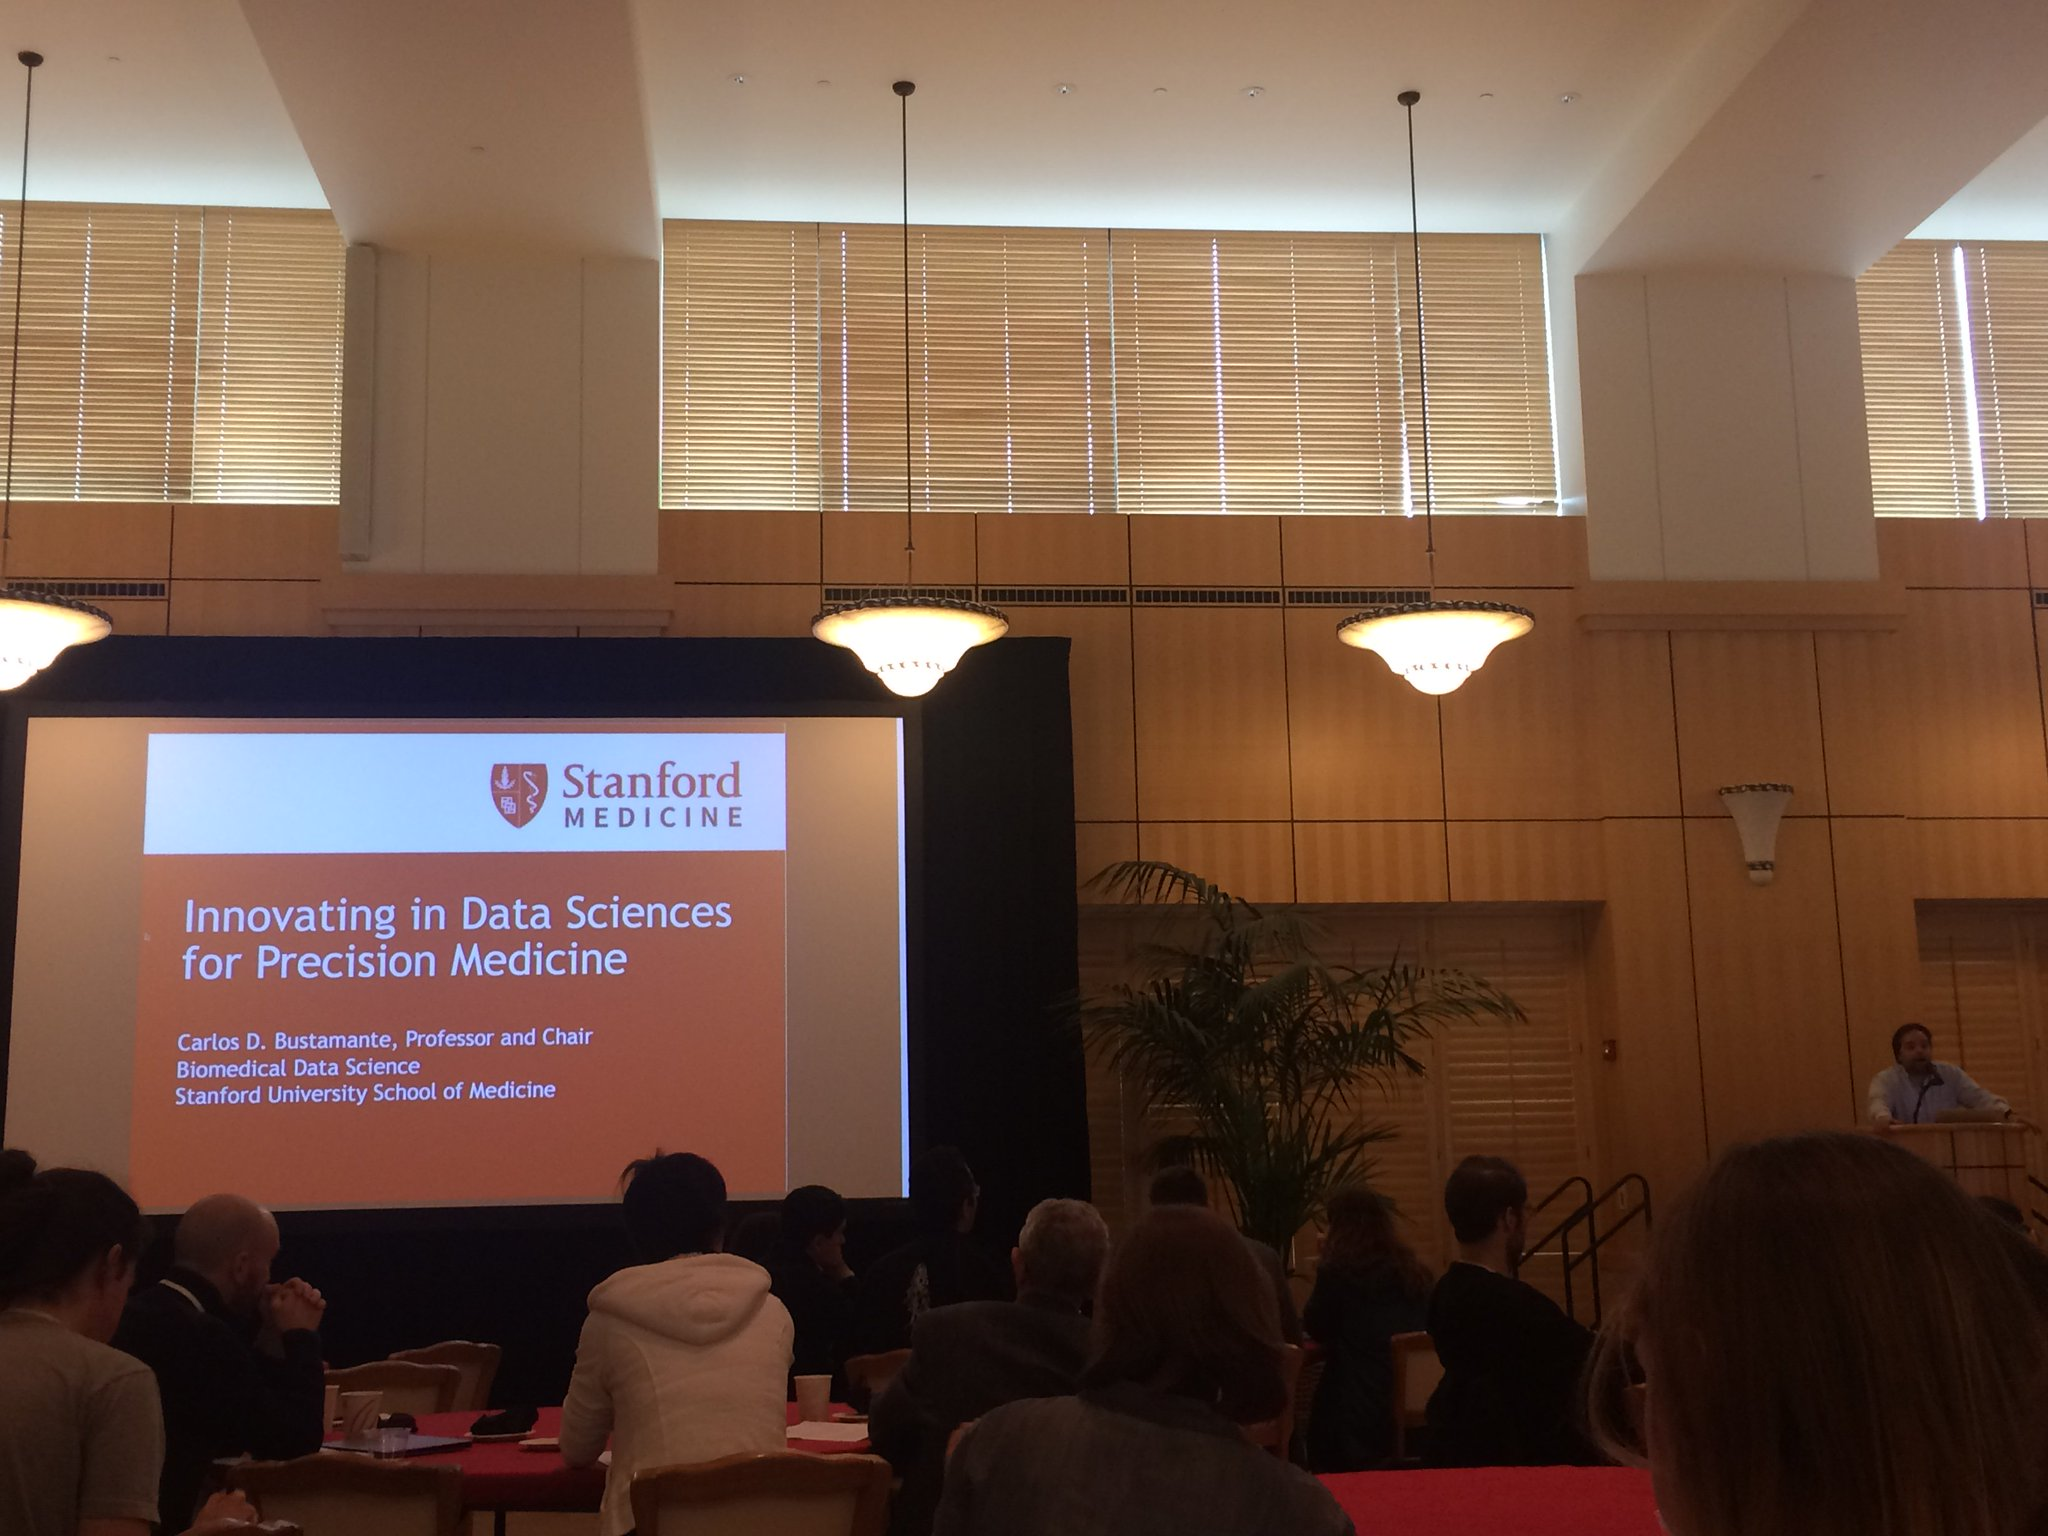 @StanfordCEHG Dr. Bustamante is giving the first talk about using data sciences for precision medicine! #CEHG17 https://t.co/d8TqNB1NZt